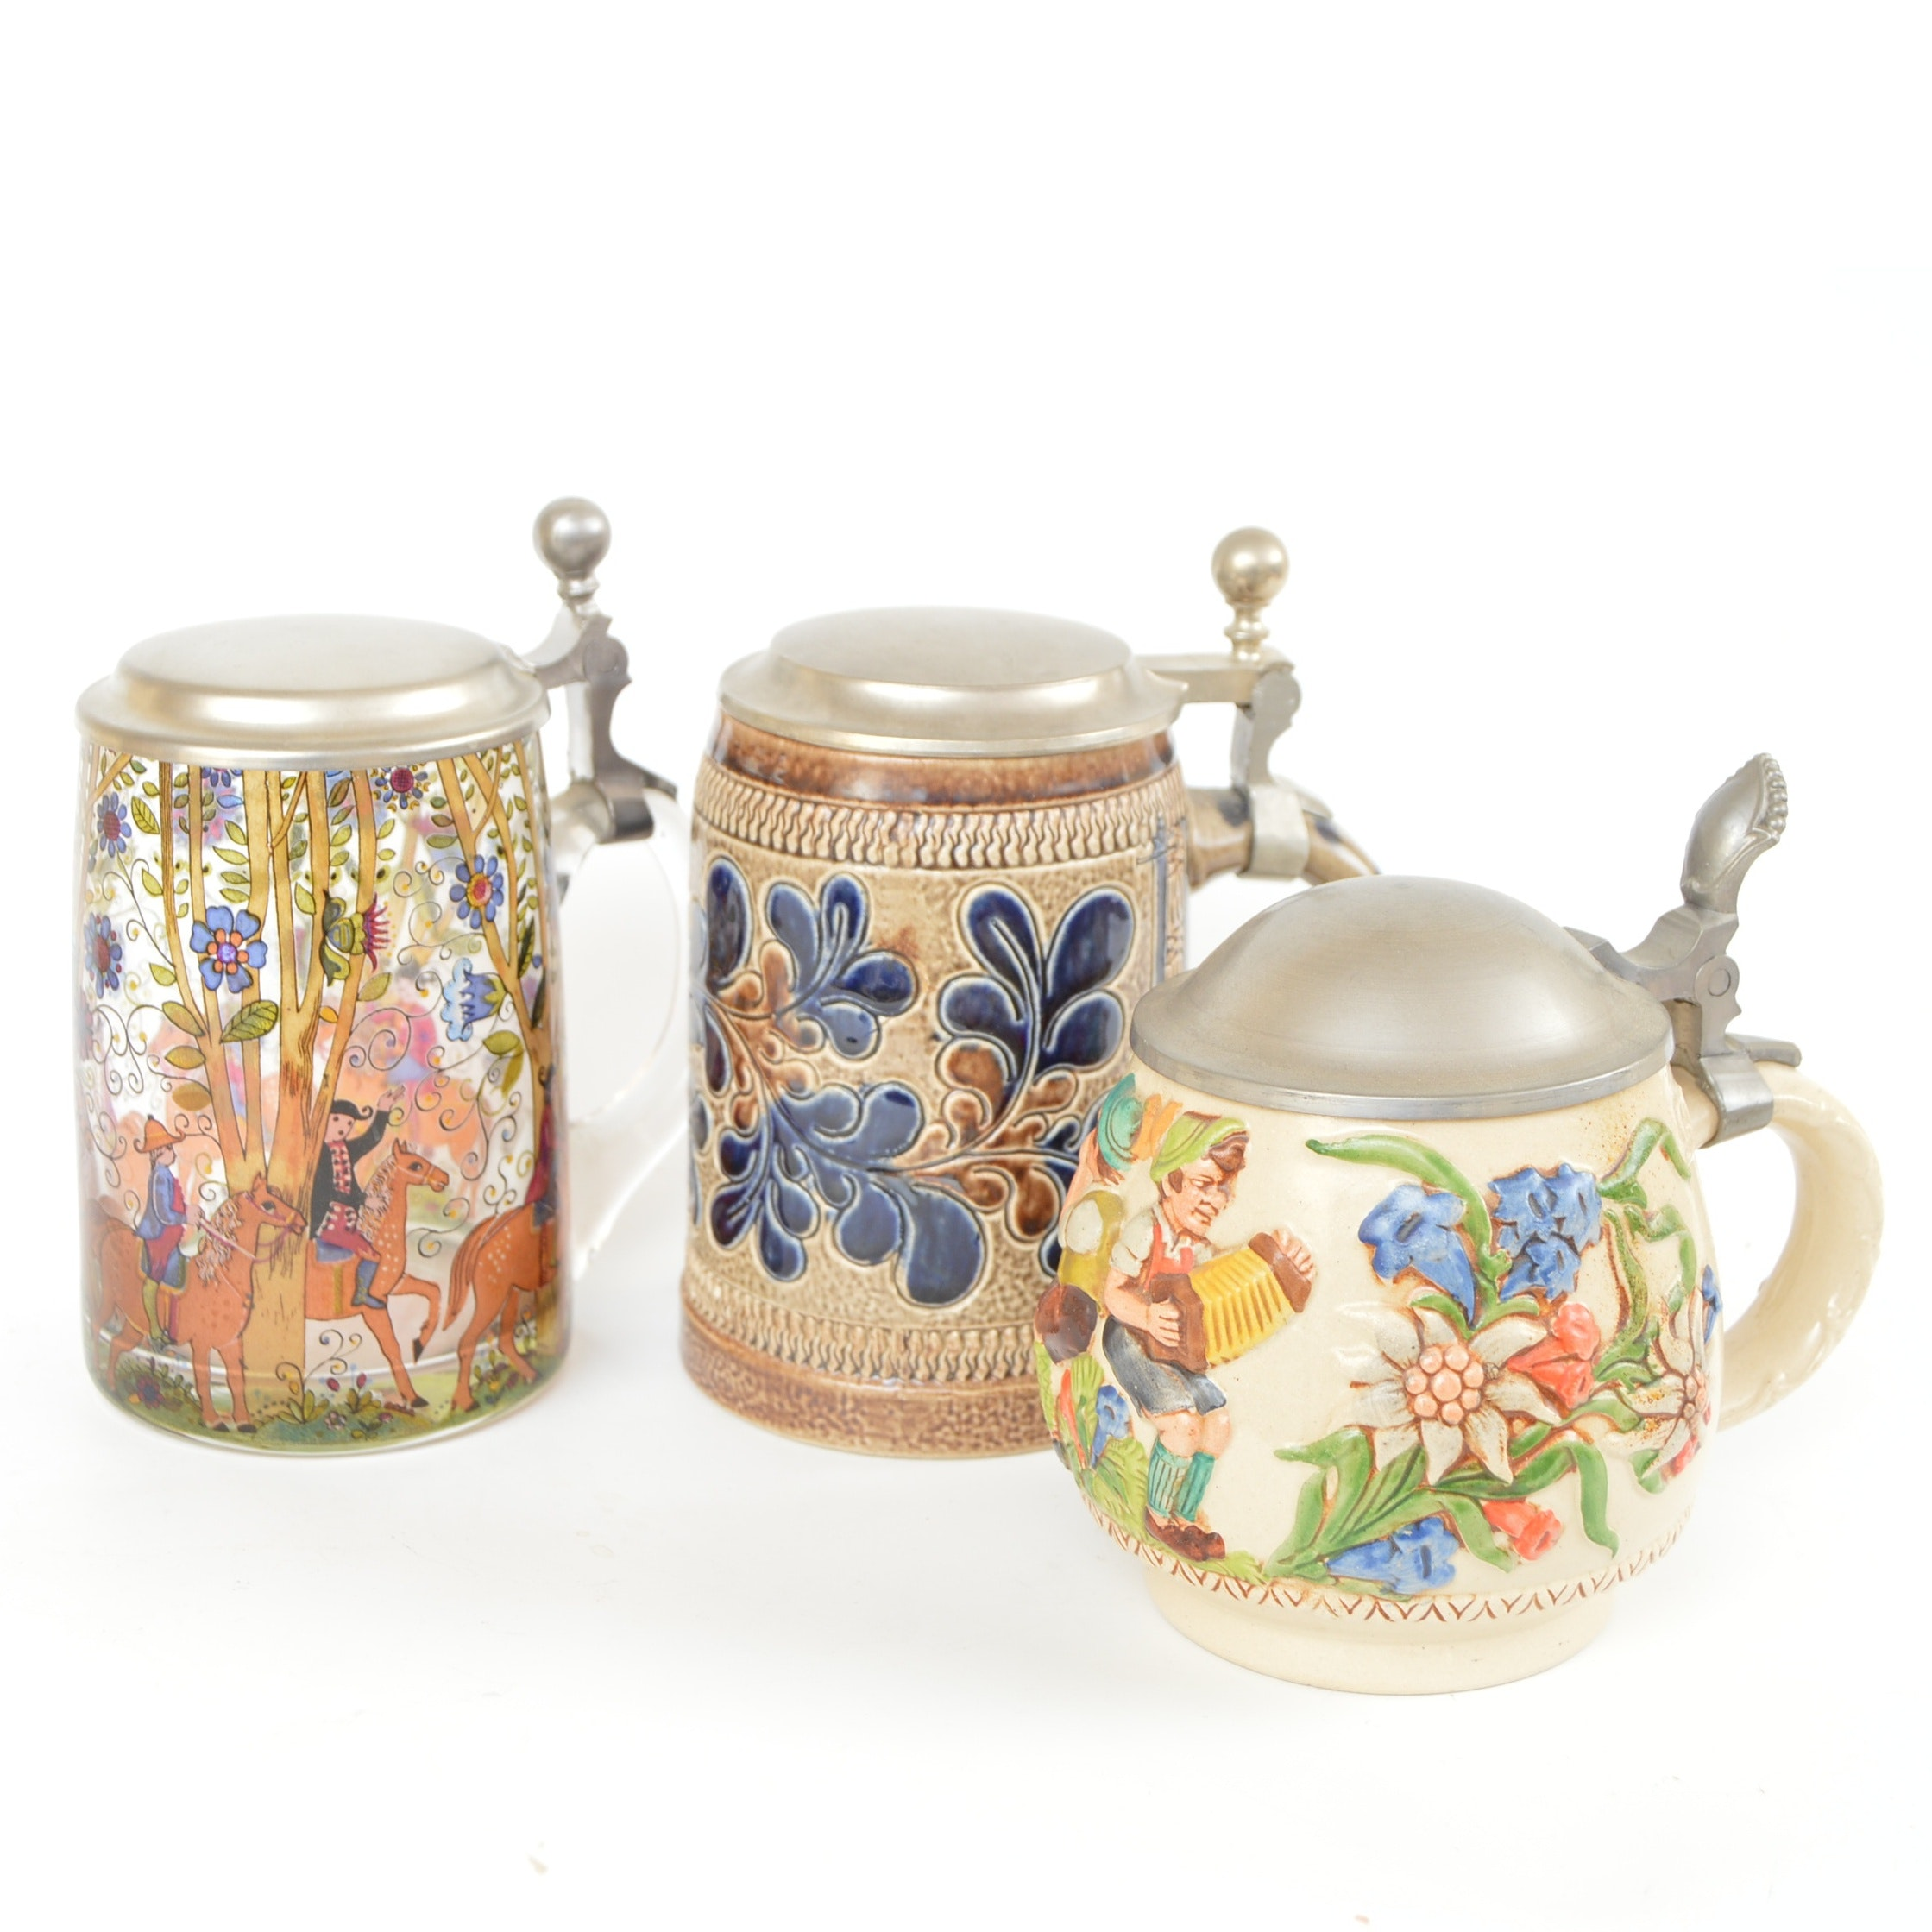 Vintage Beer Steins including Reinhold Merkelbach and Marzi & Remy